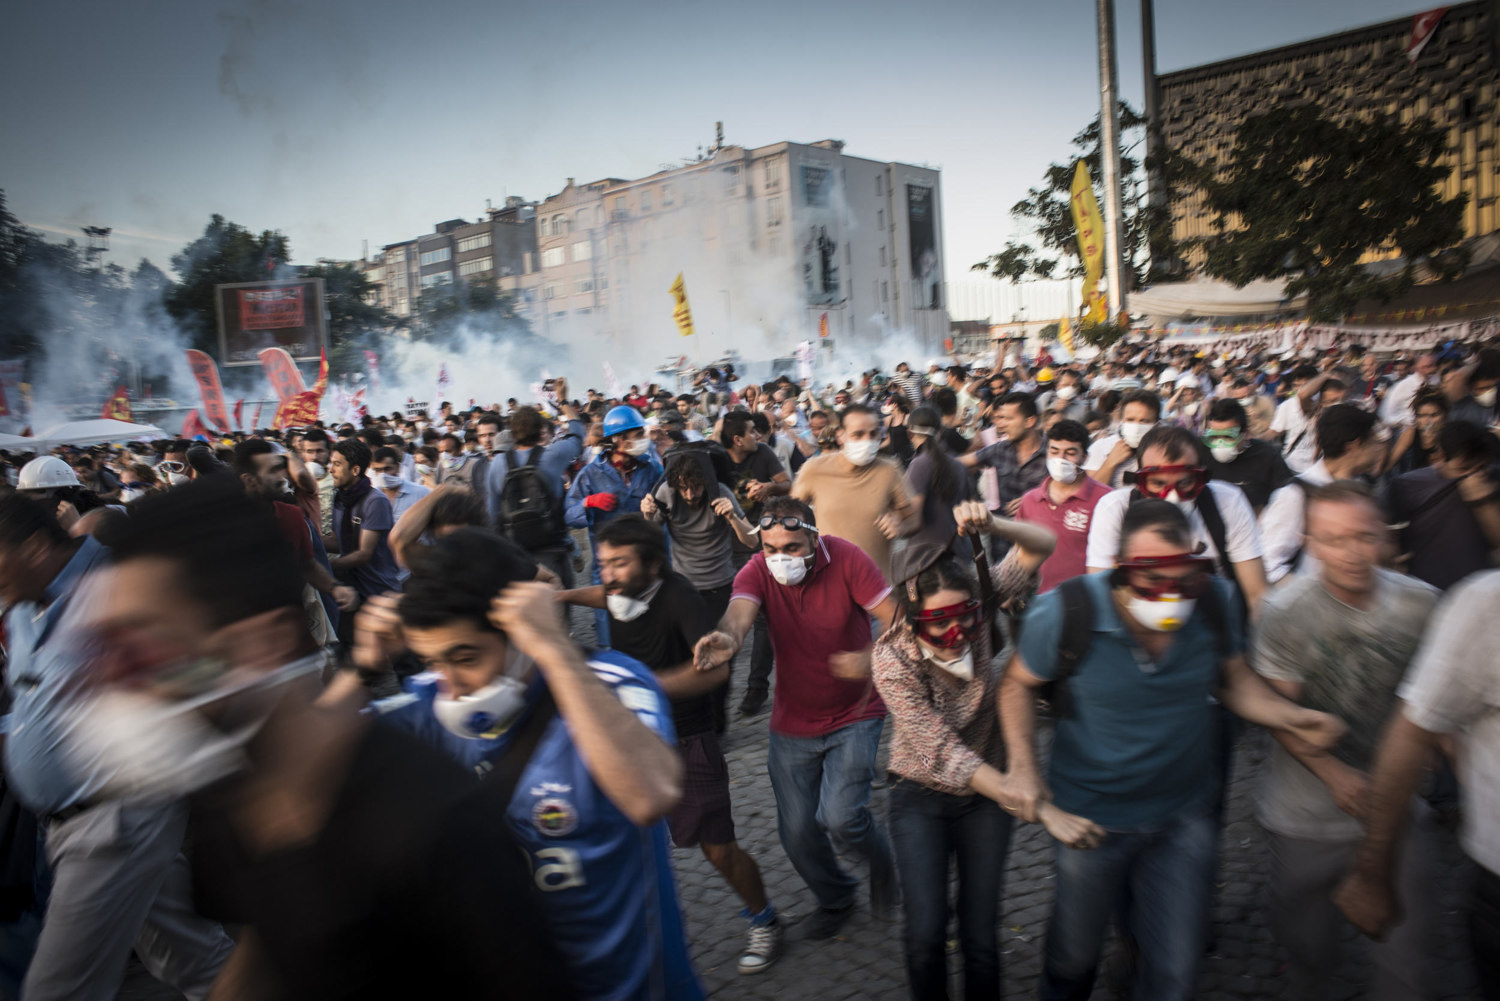 As clashes turn violent, demonstrators run from the police. 